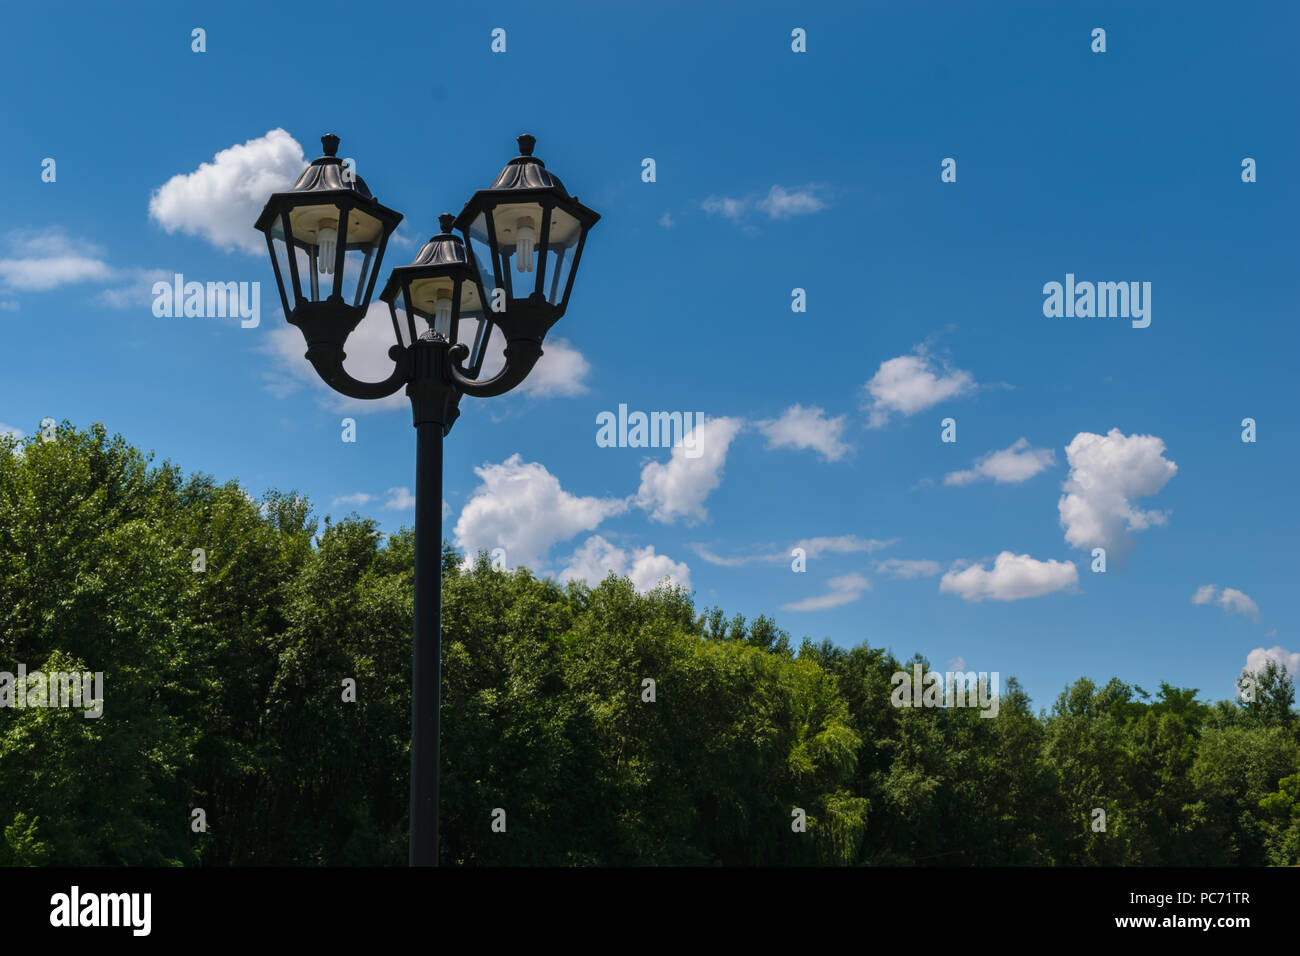 exterior street post light fixture with energy saving CCFL bulbs. Green trees in the background. - Stock Image